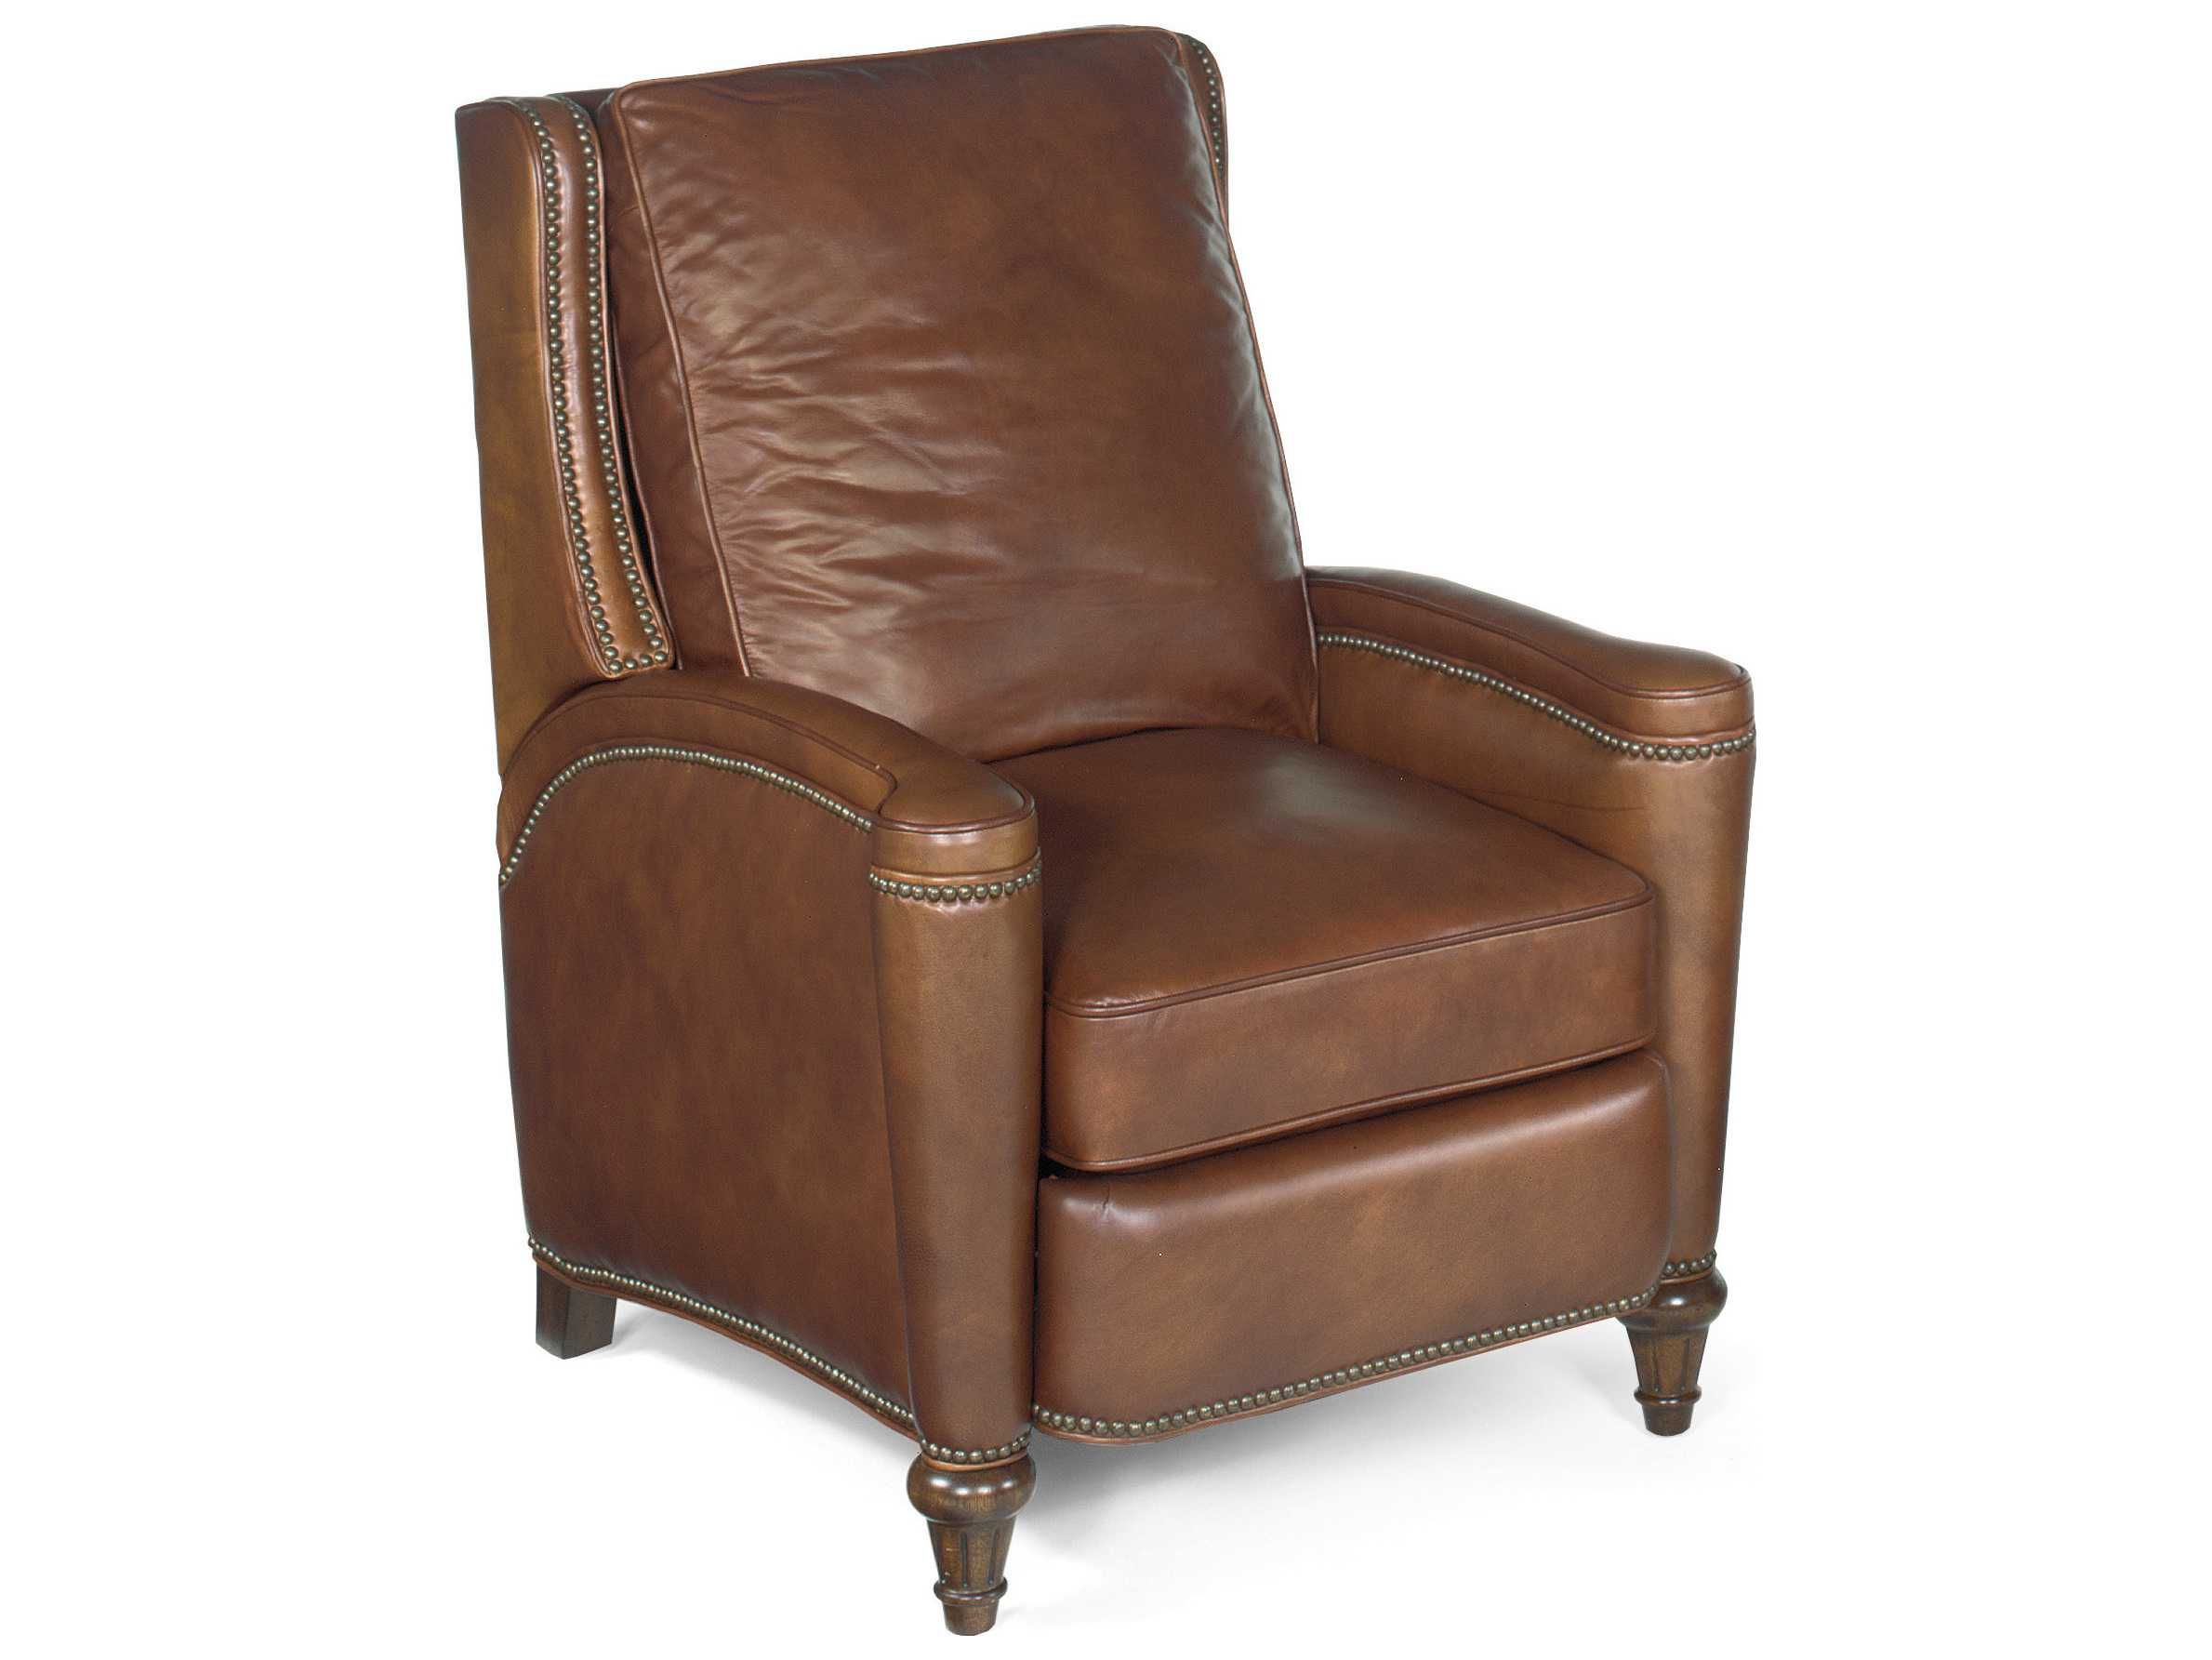 Swell Luxe Designs Toro Recliner Chair Chairs Pinterest Andrewgaddart Wooden Chair Designs For Living Room Andrewgaddartcom